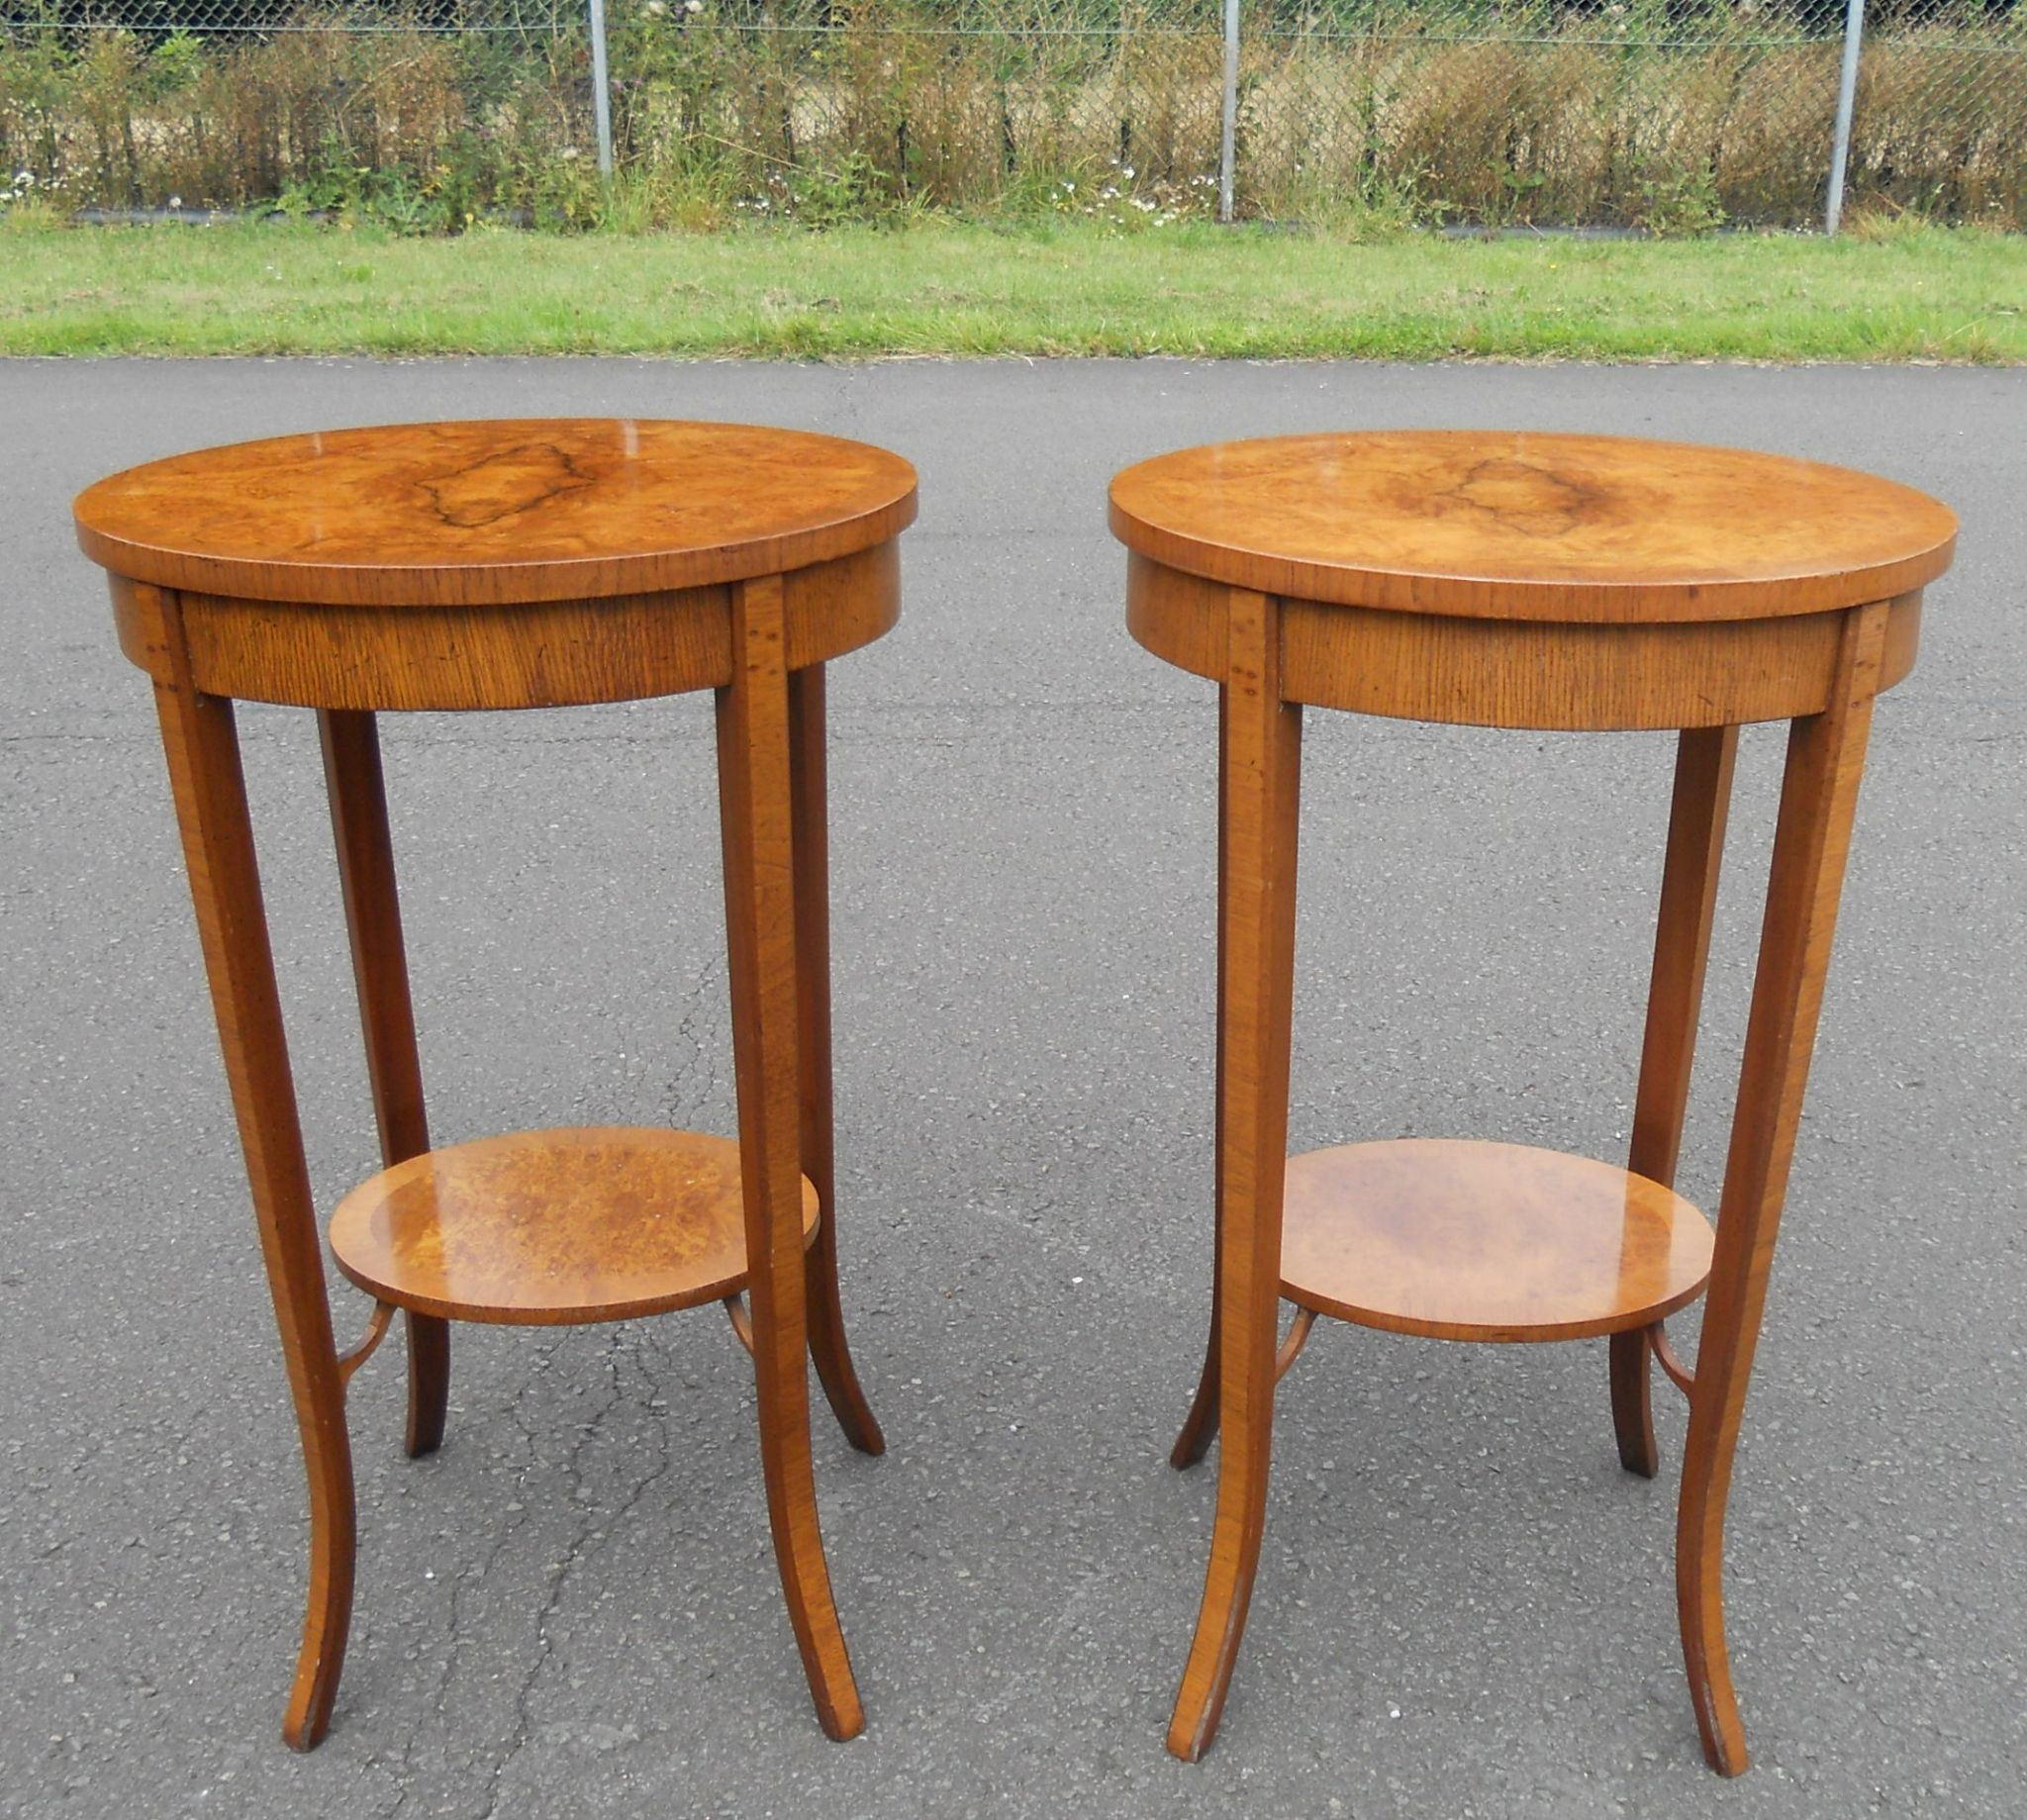 Sold pair oval top burr walnut lamp tables aloadofball Images